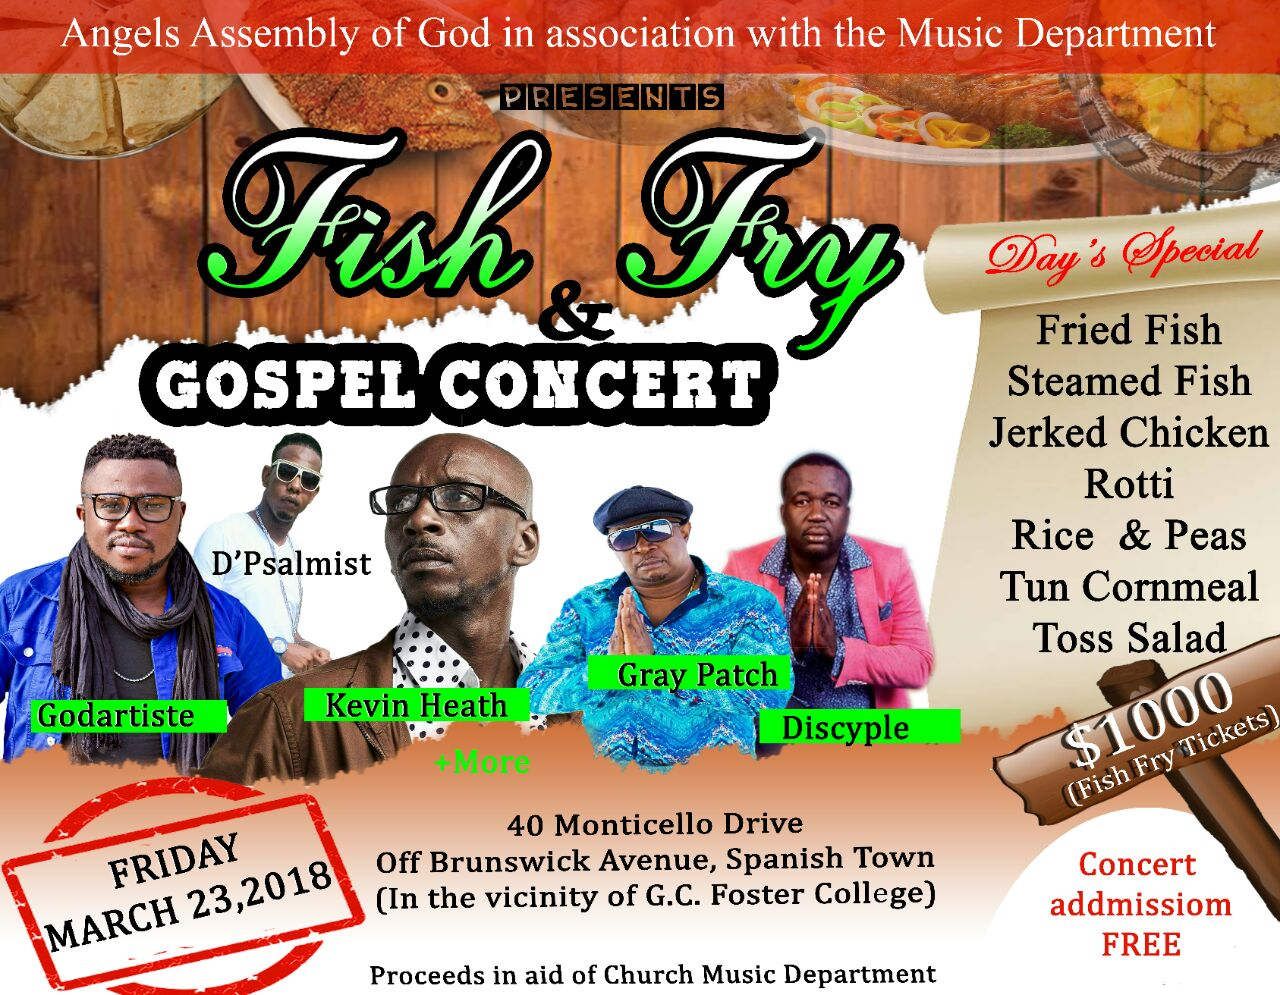 Fish Fry + Free Concert March 23, 2018 Don't Miss It!.jpeg